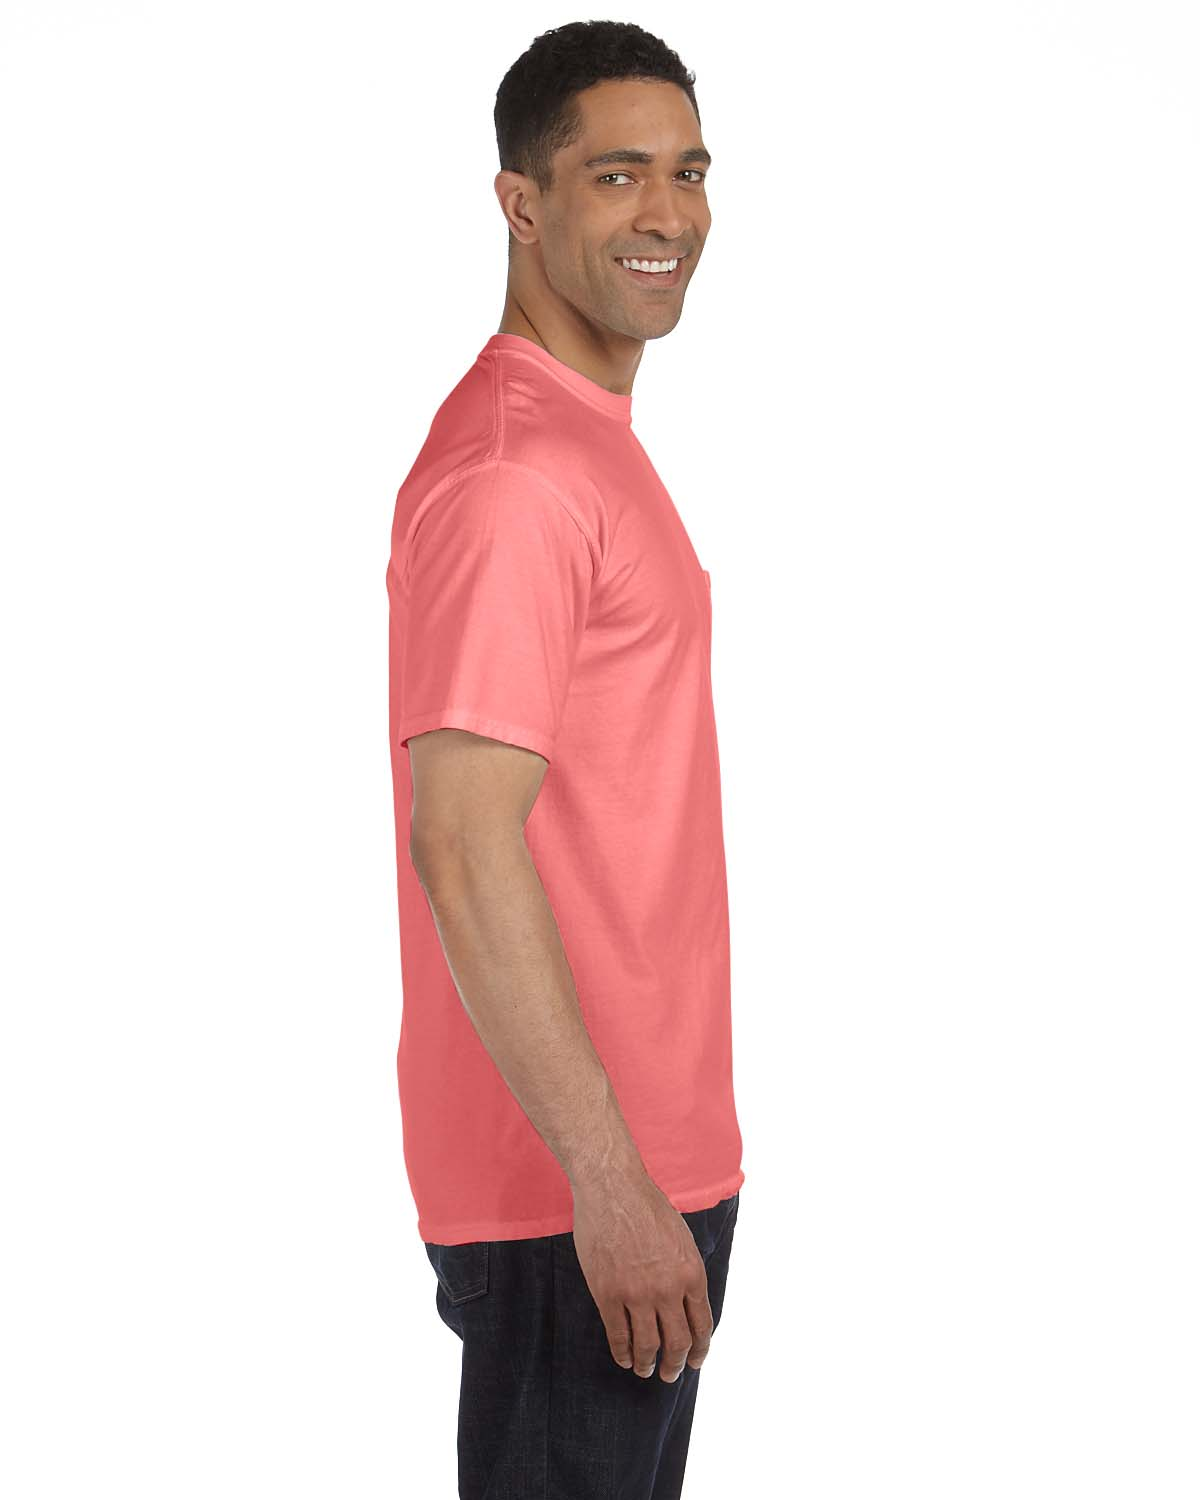 Comfort-Colors-Men-039-s-6-1-oz-Garment-Dyed-Pocket-T-Shirt-6030CC-S-3XL thumbnail 78